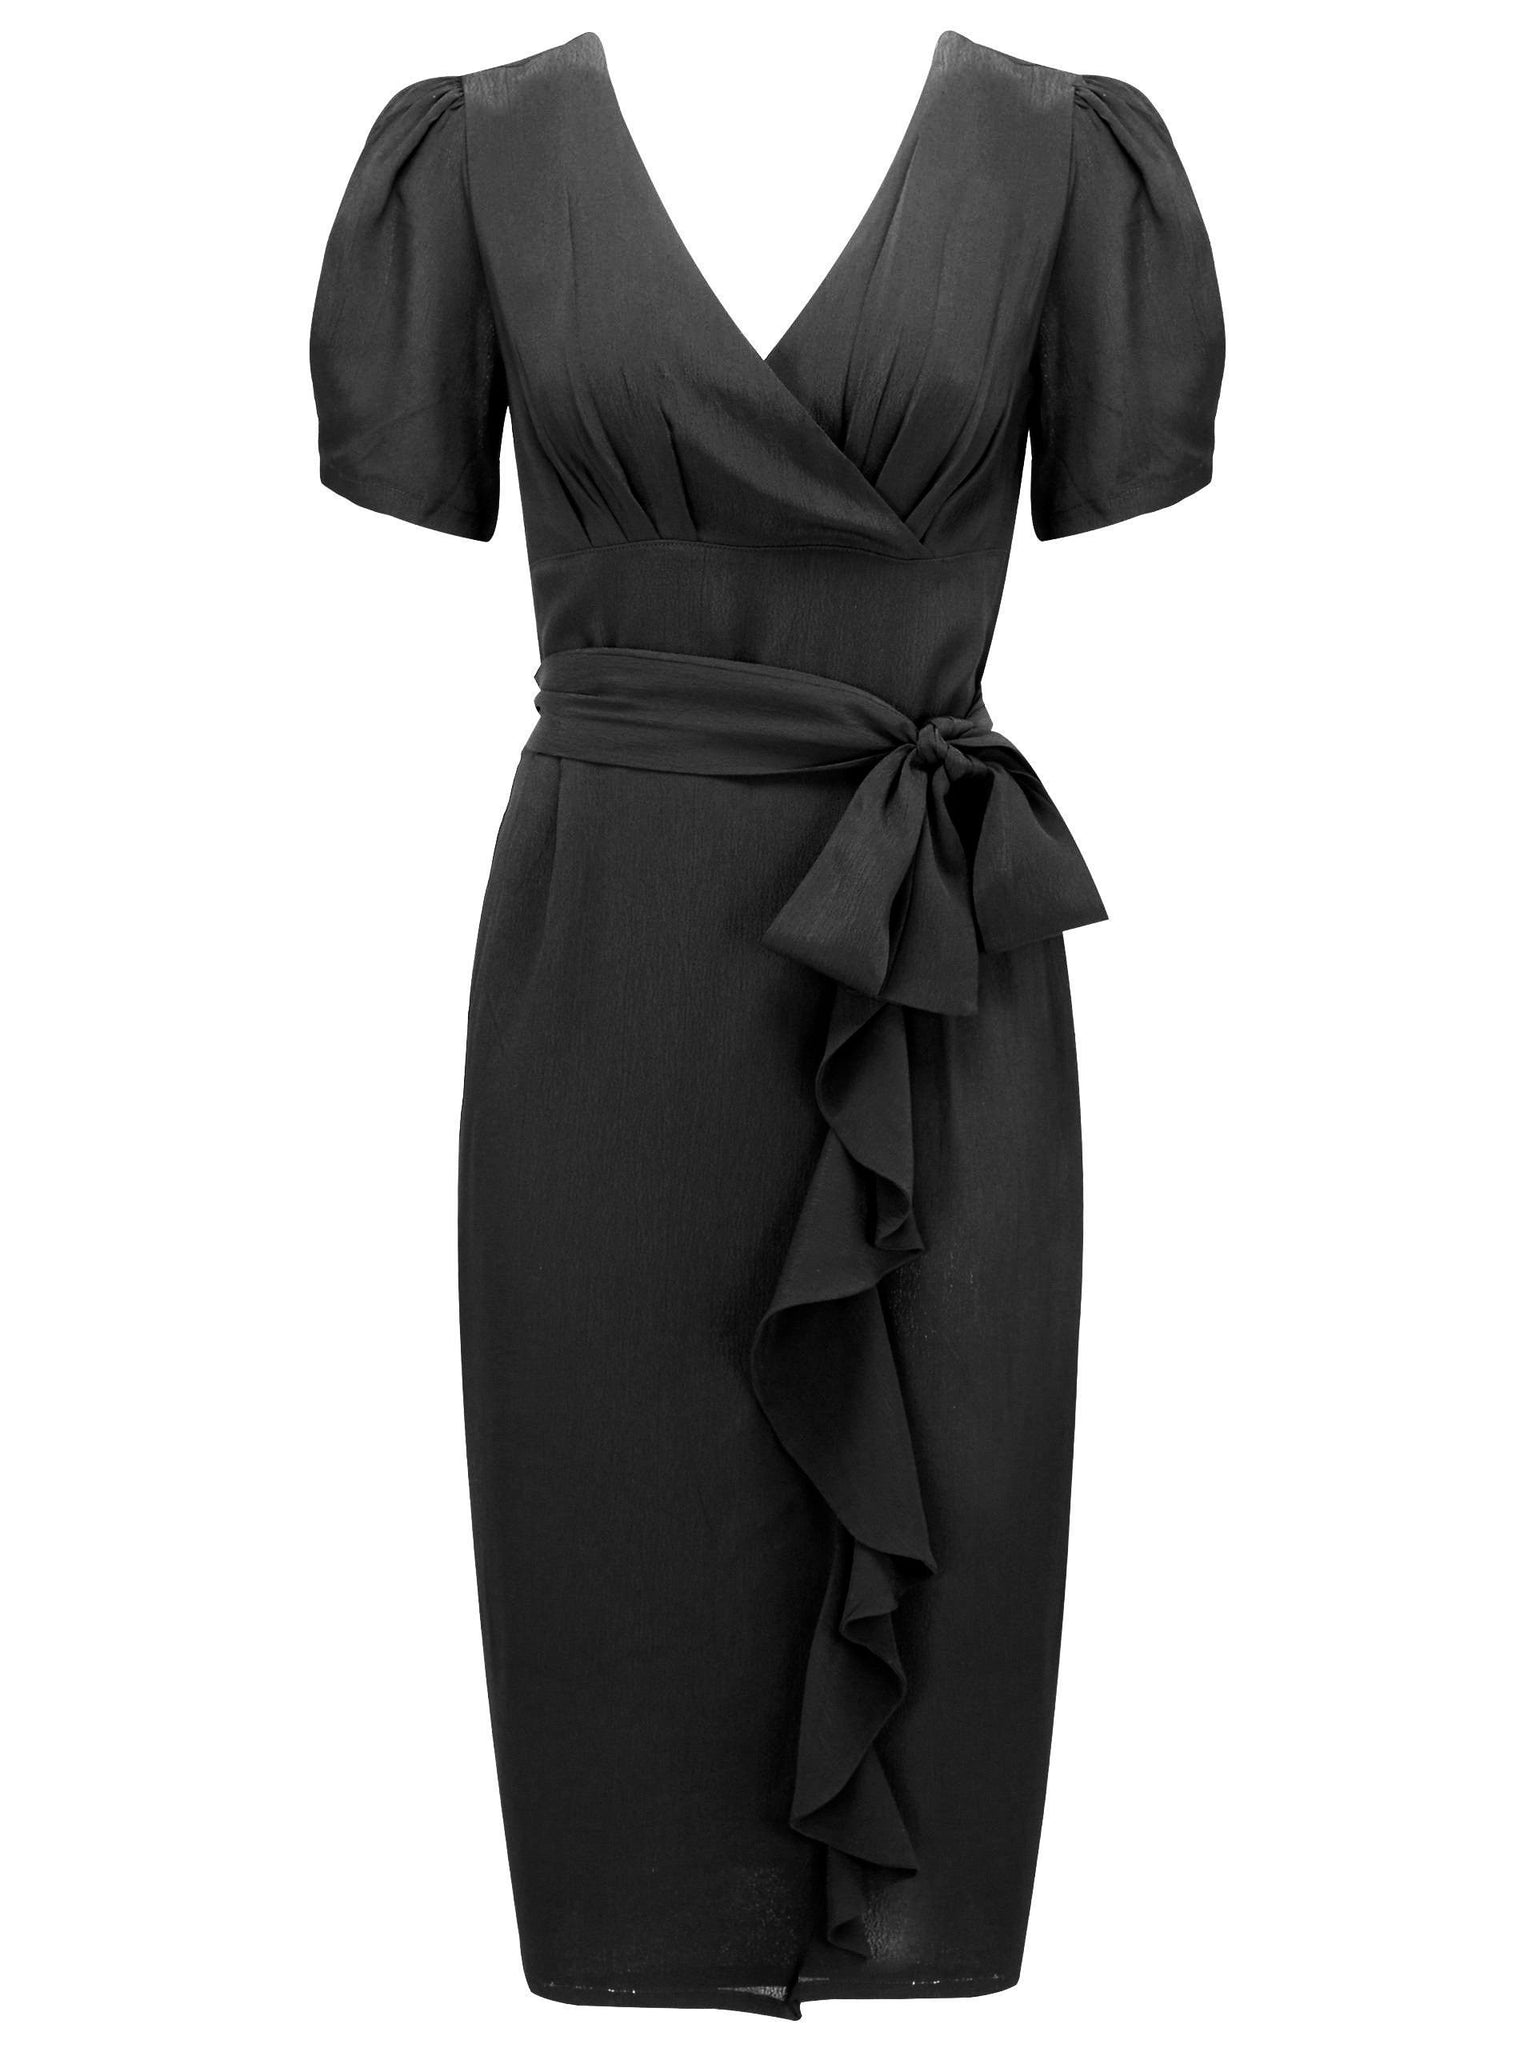 "The Seamstress Of Bloomsbury ""Lilian"" Sarong Dress in Black, A True Classic & Authentic 1940s Vintage Style - RocknRomance Clothing"